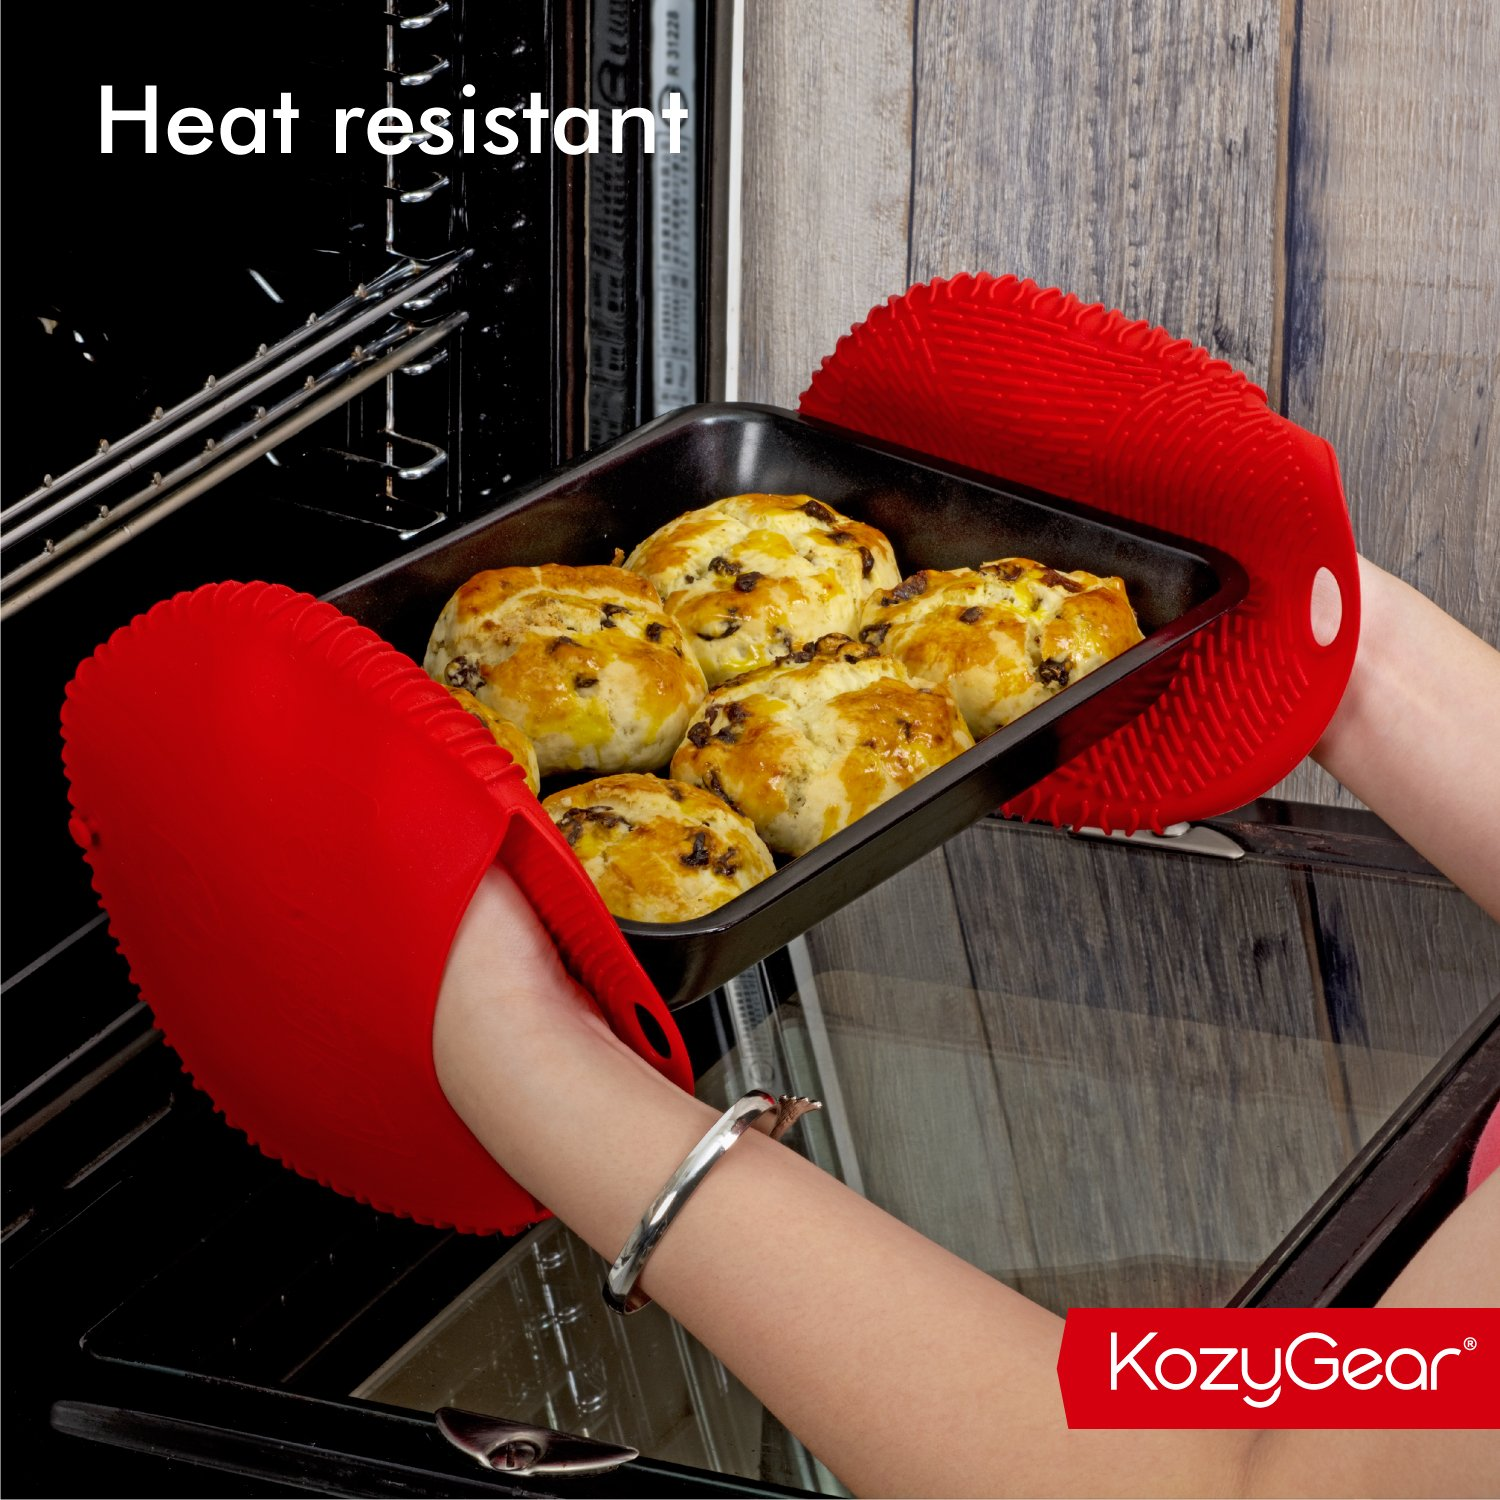 KozyGear Premium 442 °F Heat Resistant Silicone Glove Holder/Oven Mitt Pair Set for Hot Pot [Z4 Series] (RED) by KozyGear (Image #7)